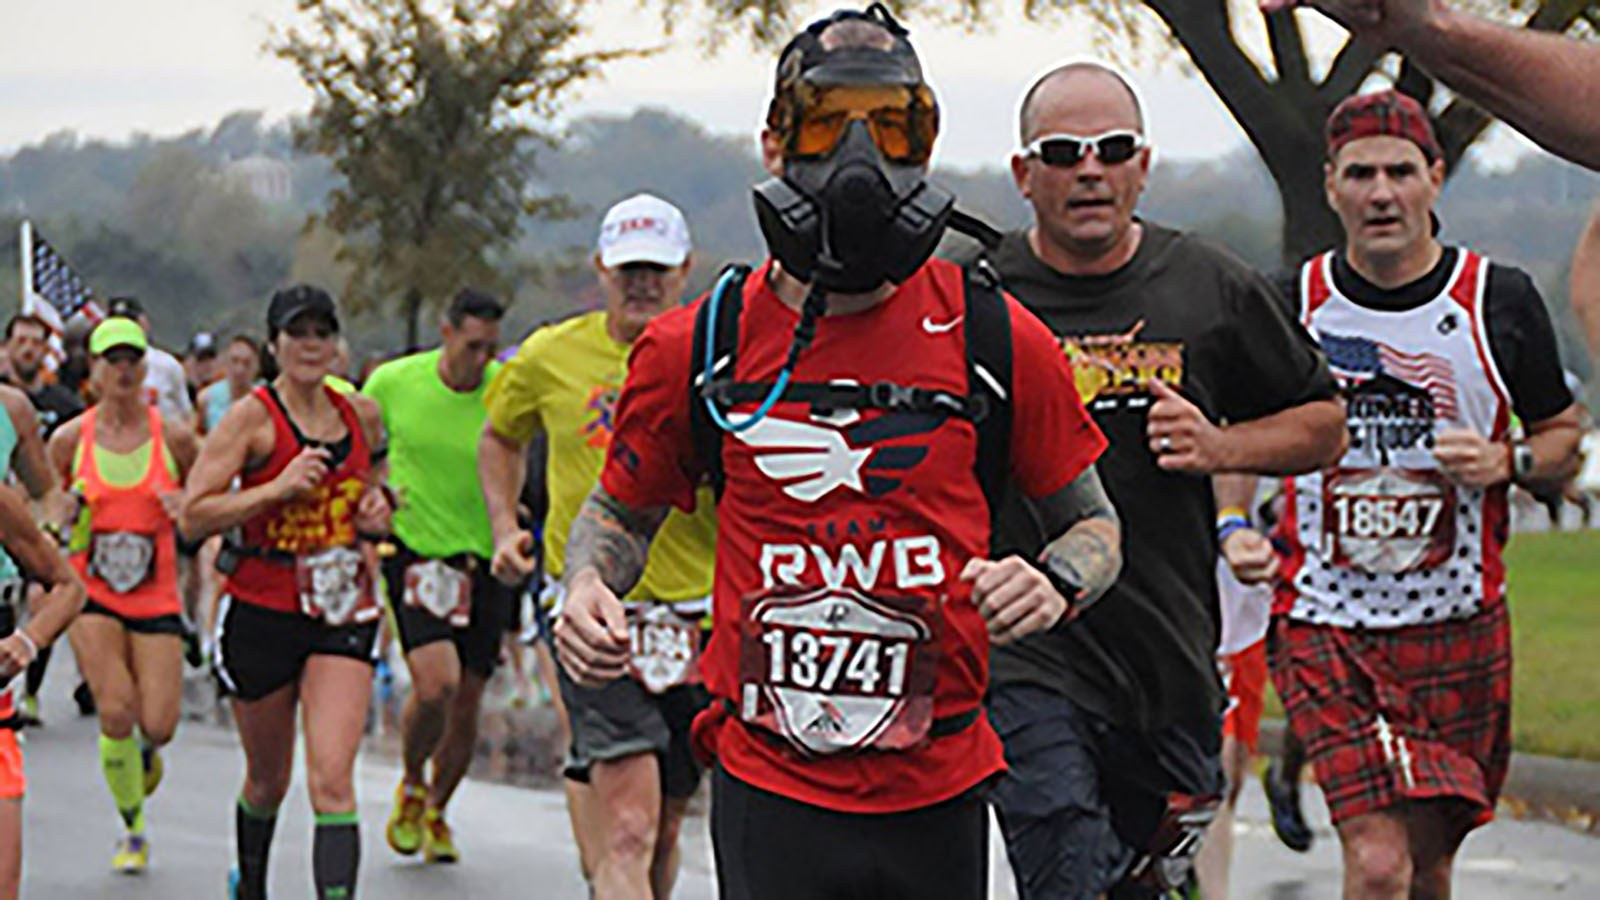 Course Director and Marine Corps Veteran Aaron Benningfield Sets World Record - Hero image